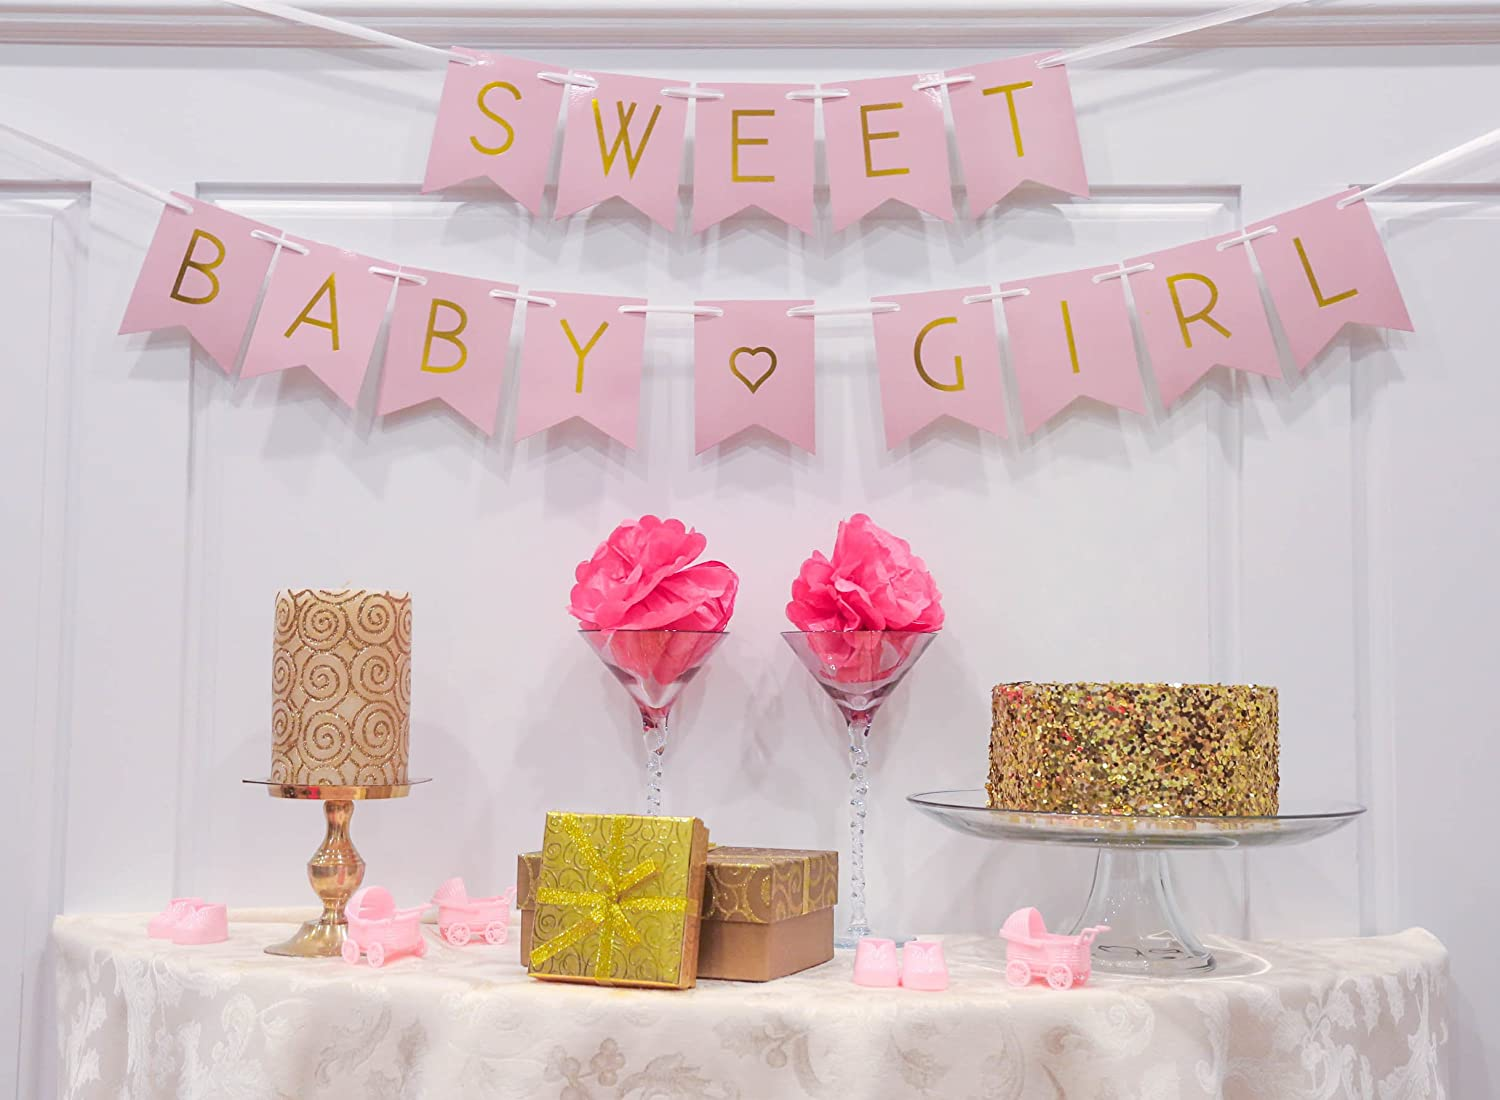 Pics of baby shower decorations - Where to buy baby shower decorations ...